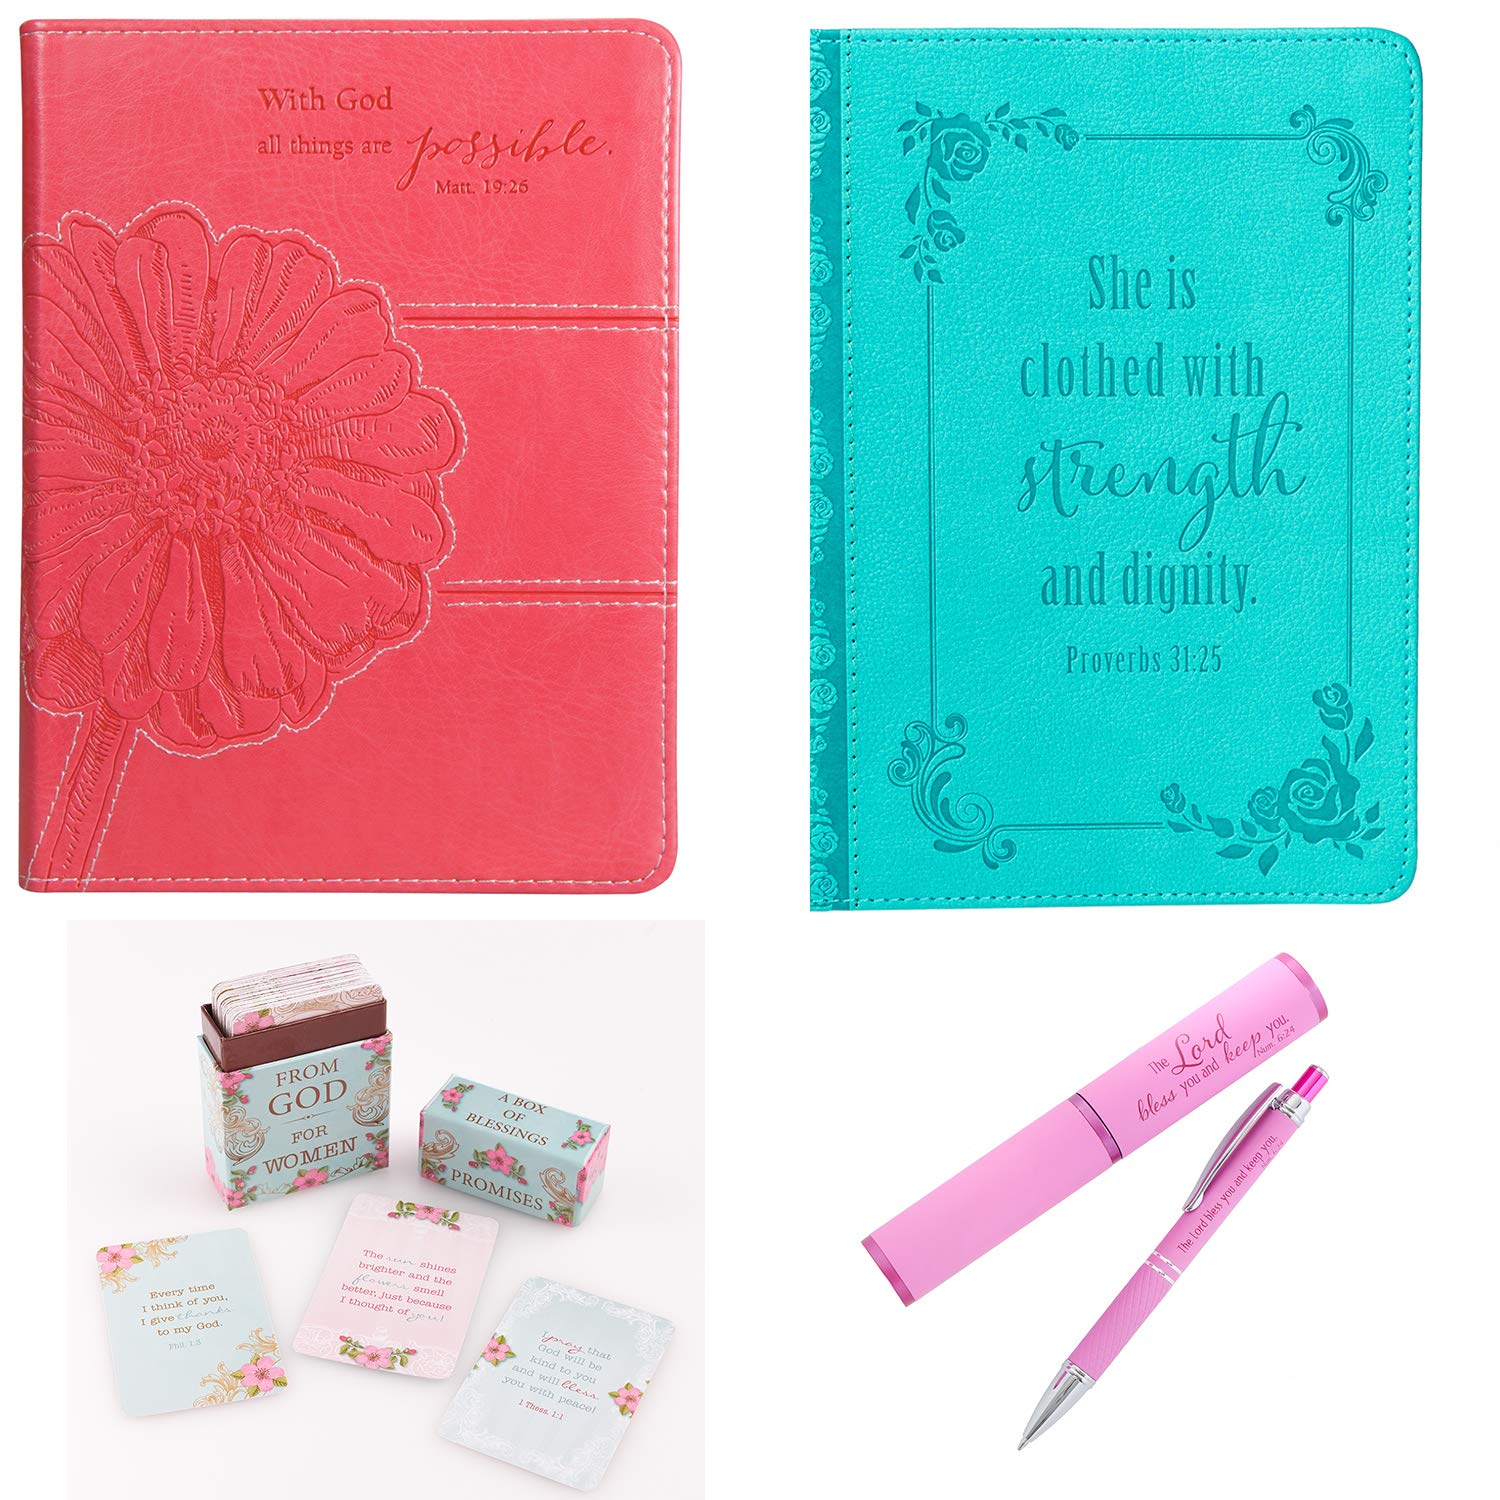 Christian Daily Prayer Journals with Promises from God Box of Blessings and Gift Pen